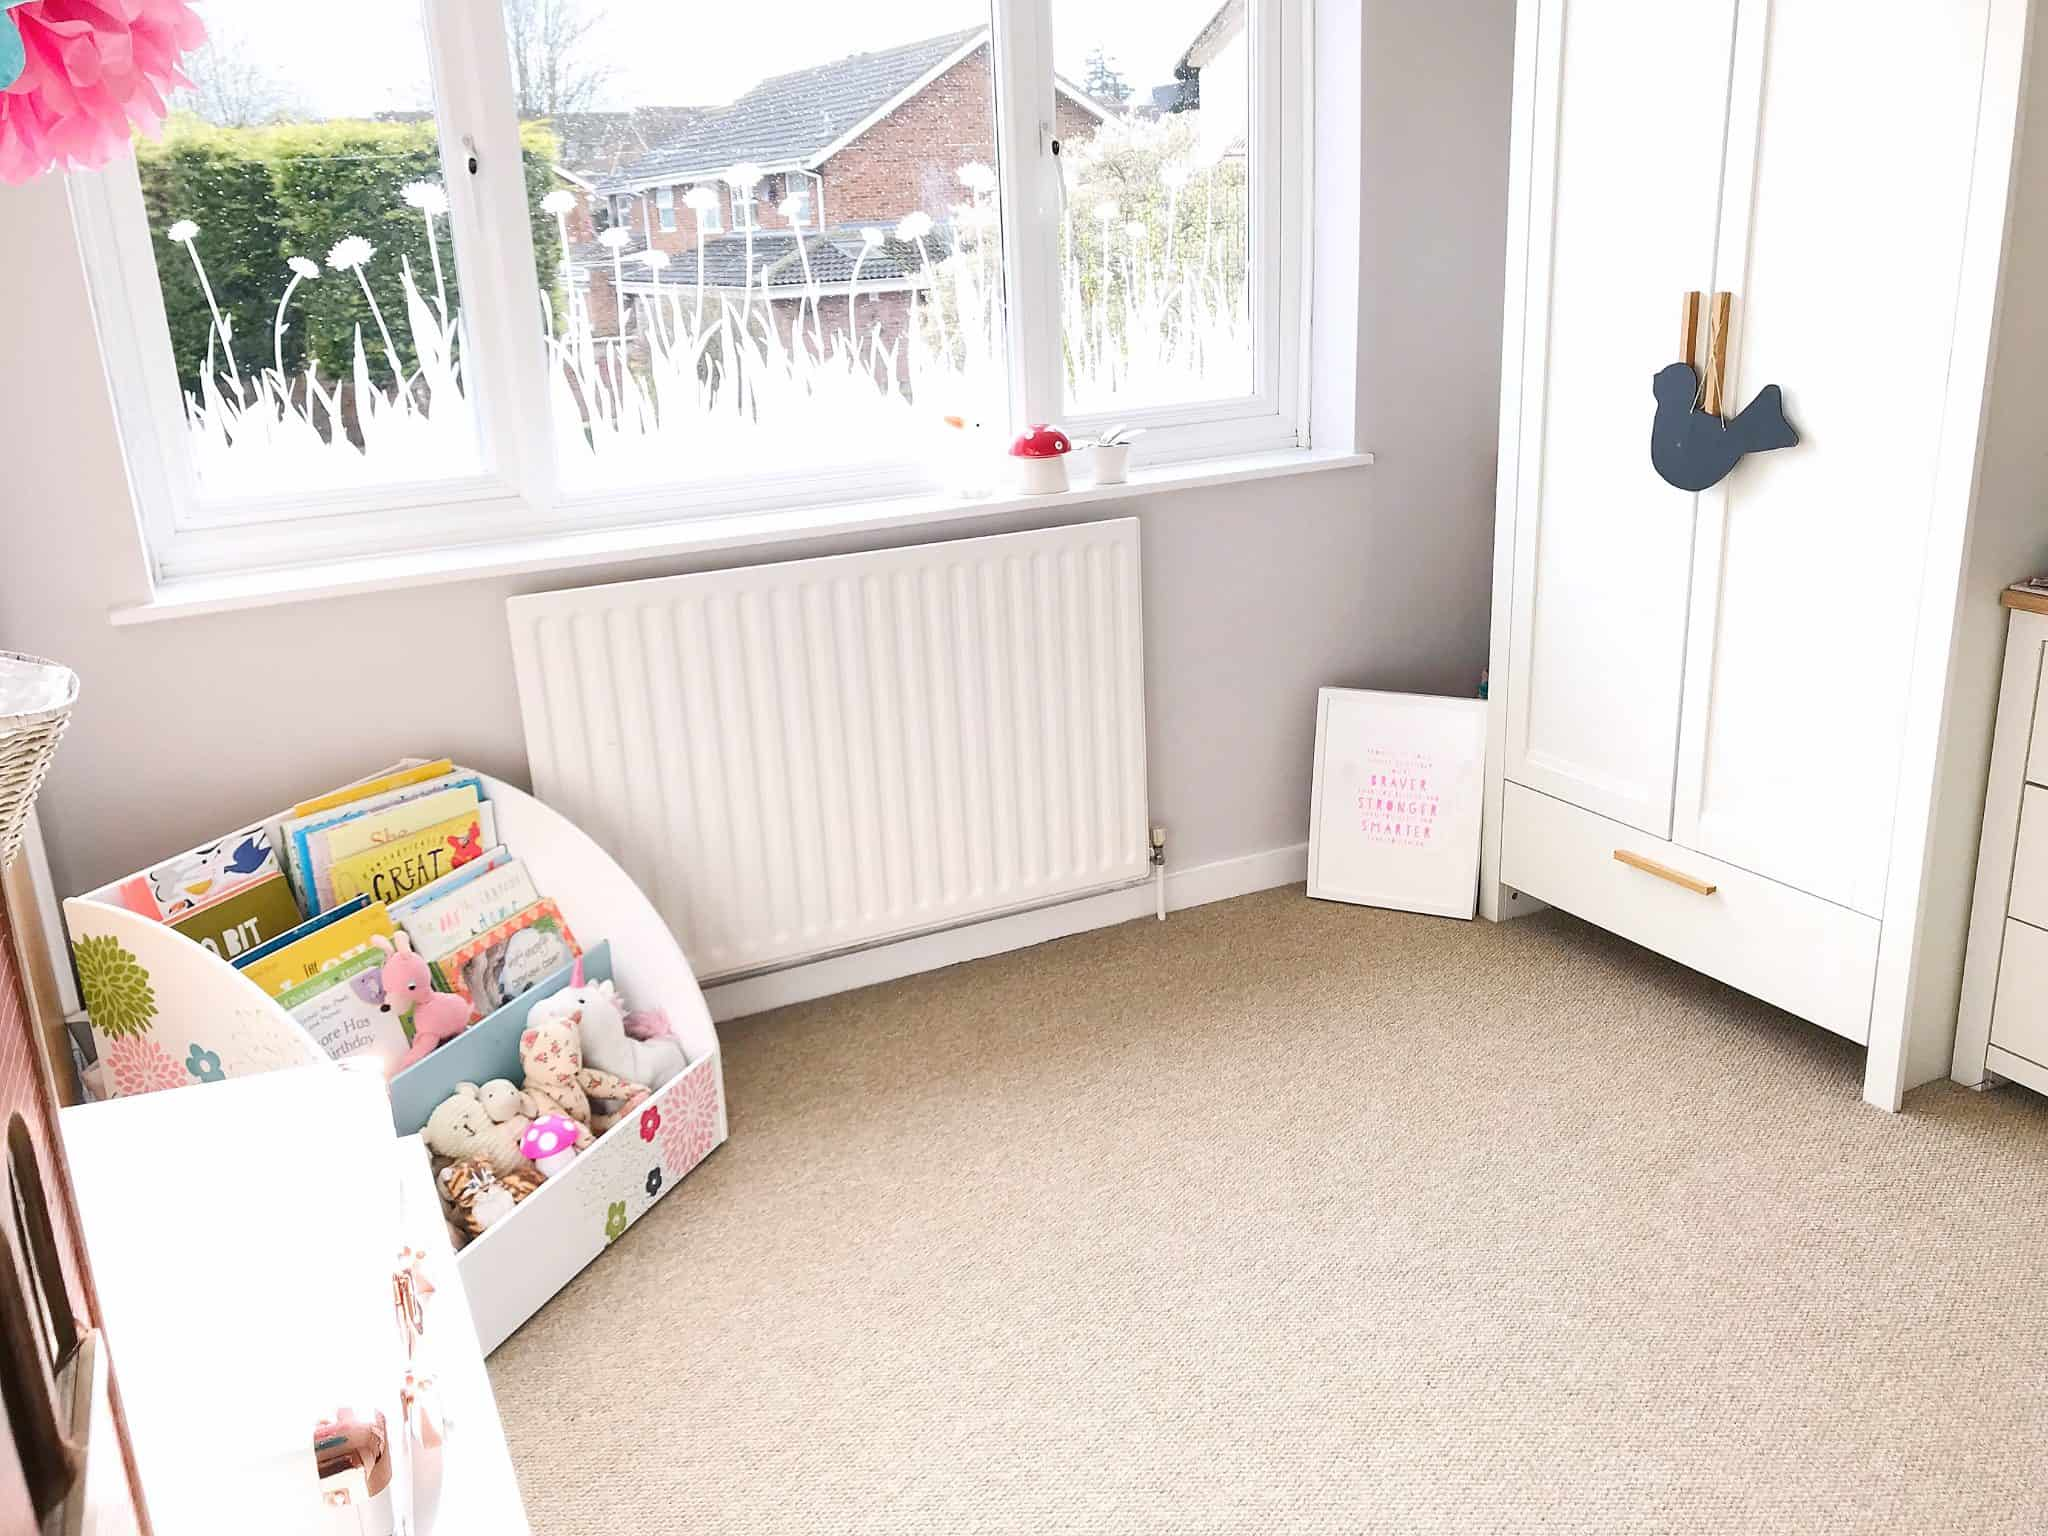 A bedroom ready to make a playroom and creative space